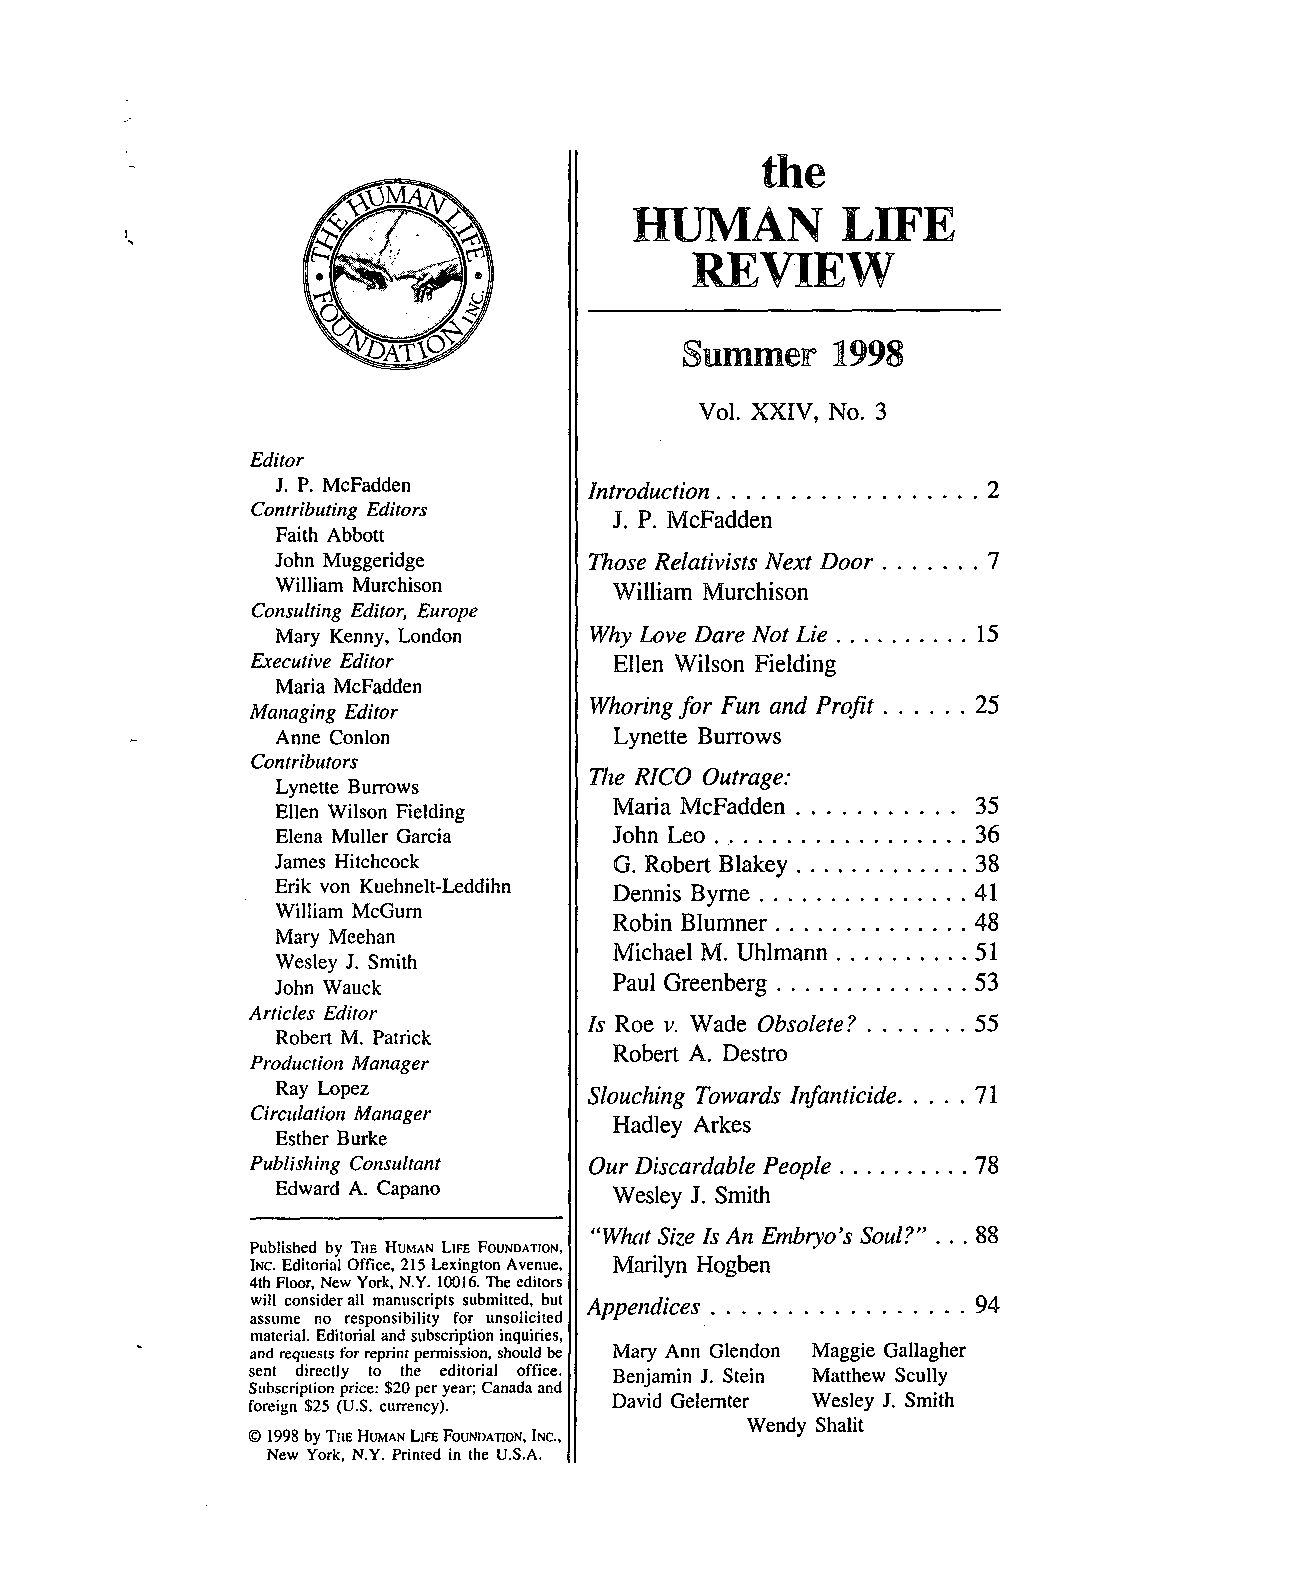 The Human Life Review Summer 1998 - The Human Life Review